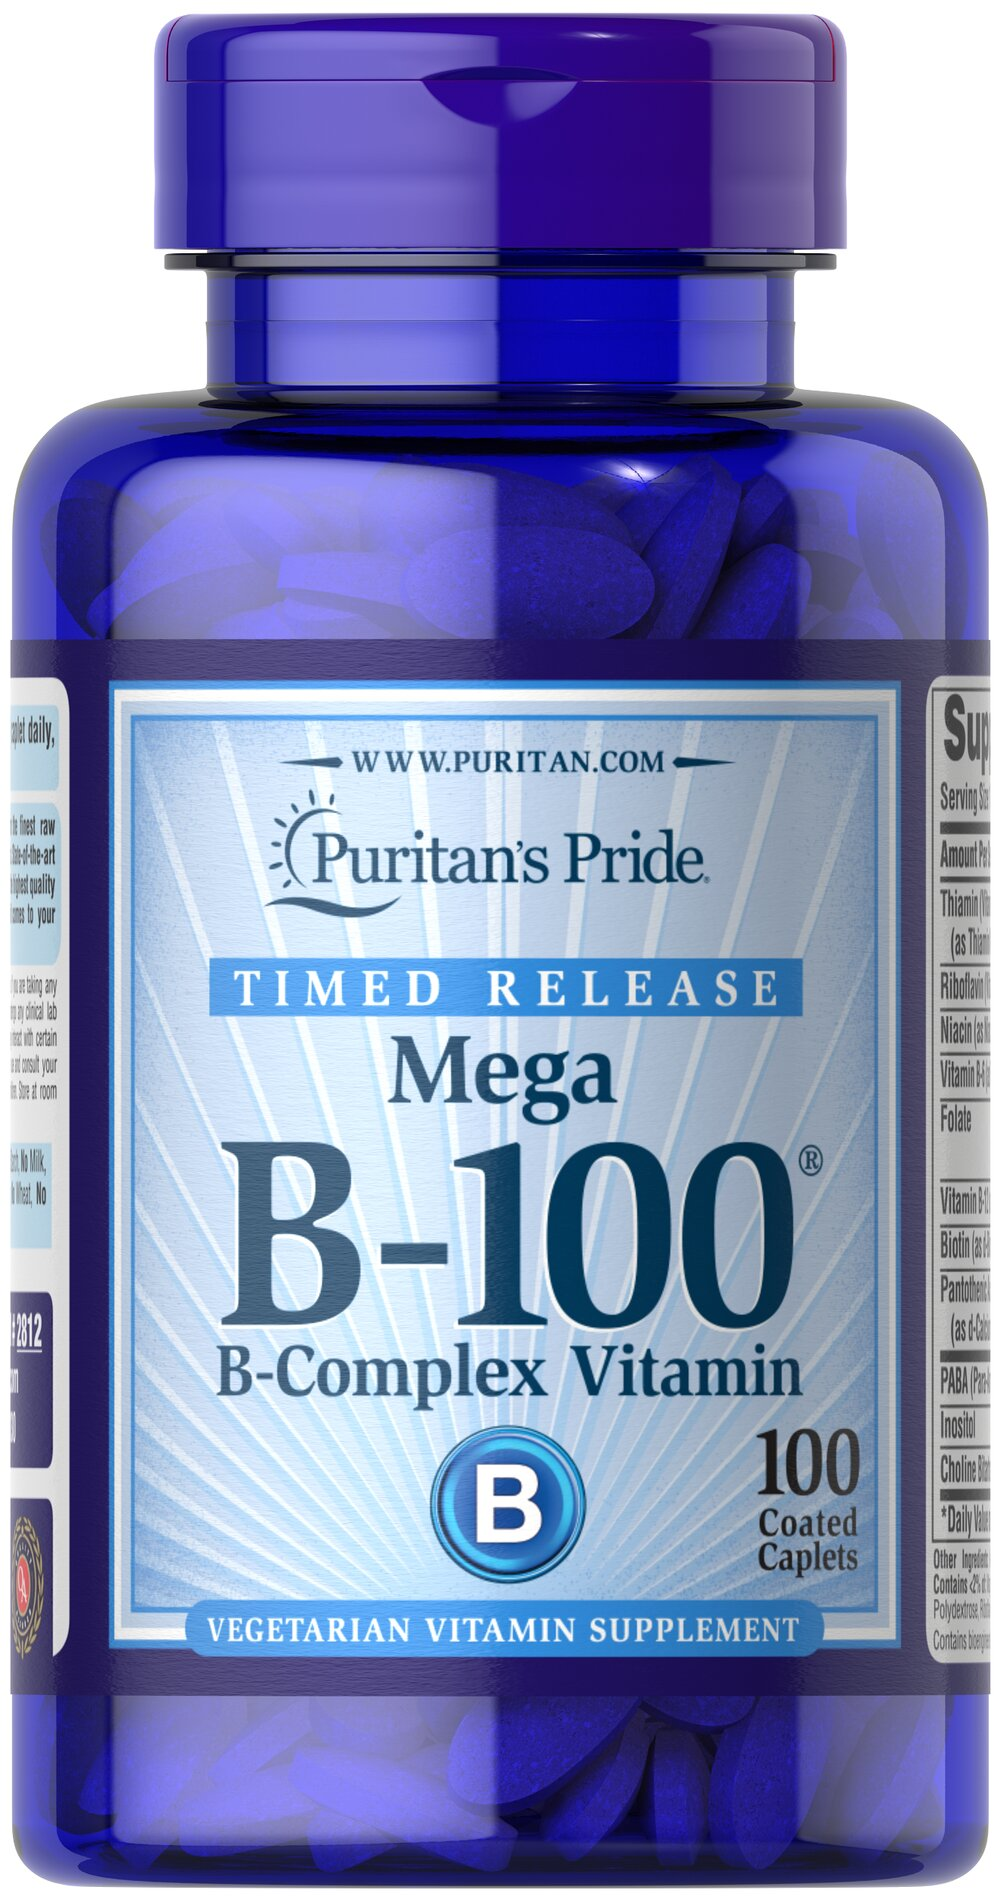 Vitamin B-100® Complex Timed Release <p>Each nutrient in the Vitamin B-100® Complex performs a unique role in maintaining proper metabolic functioning and is essential for well being.** When taken together in a complex formula, the B Vitamins help to maintain the health of the nervous system, skin, eyes and hair.** This product is specially formulated to provide a gradual release of vitamins over a prolonged period of time.</p>  100 Tablets 100 mg $20.39